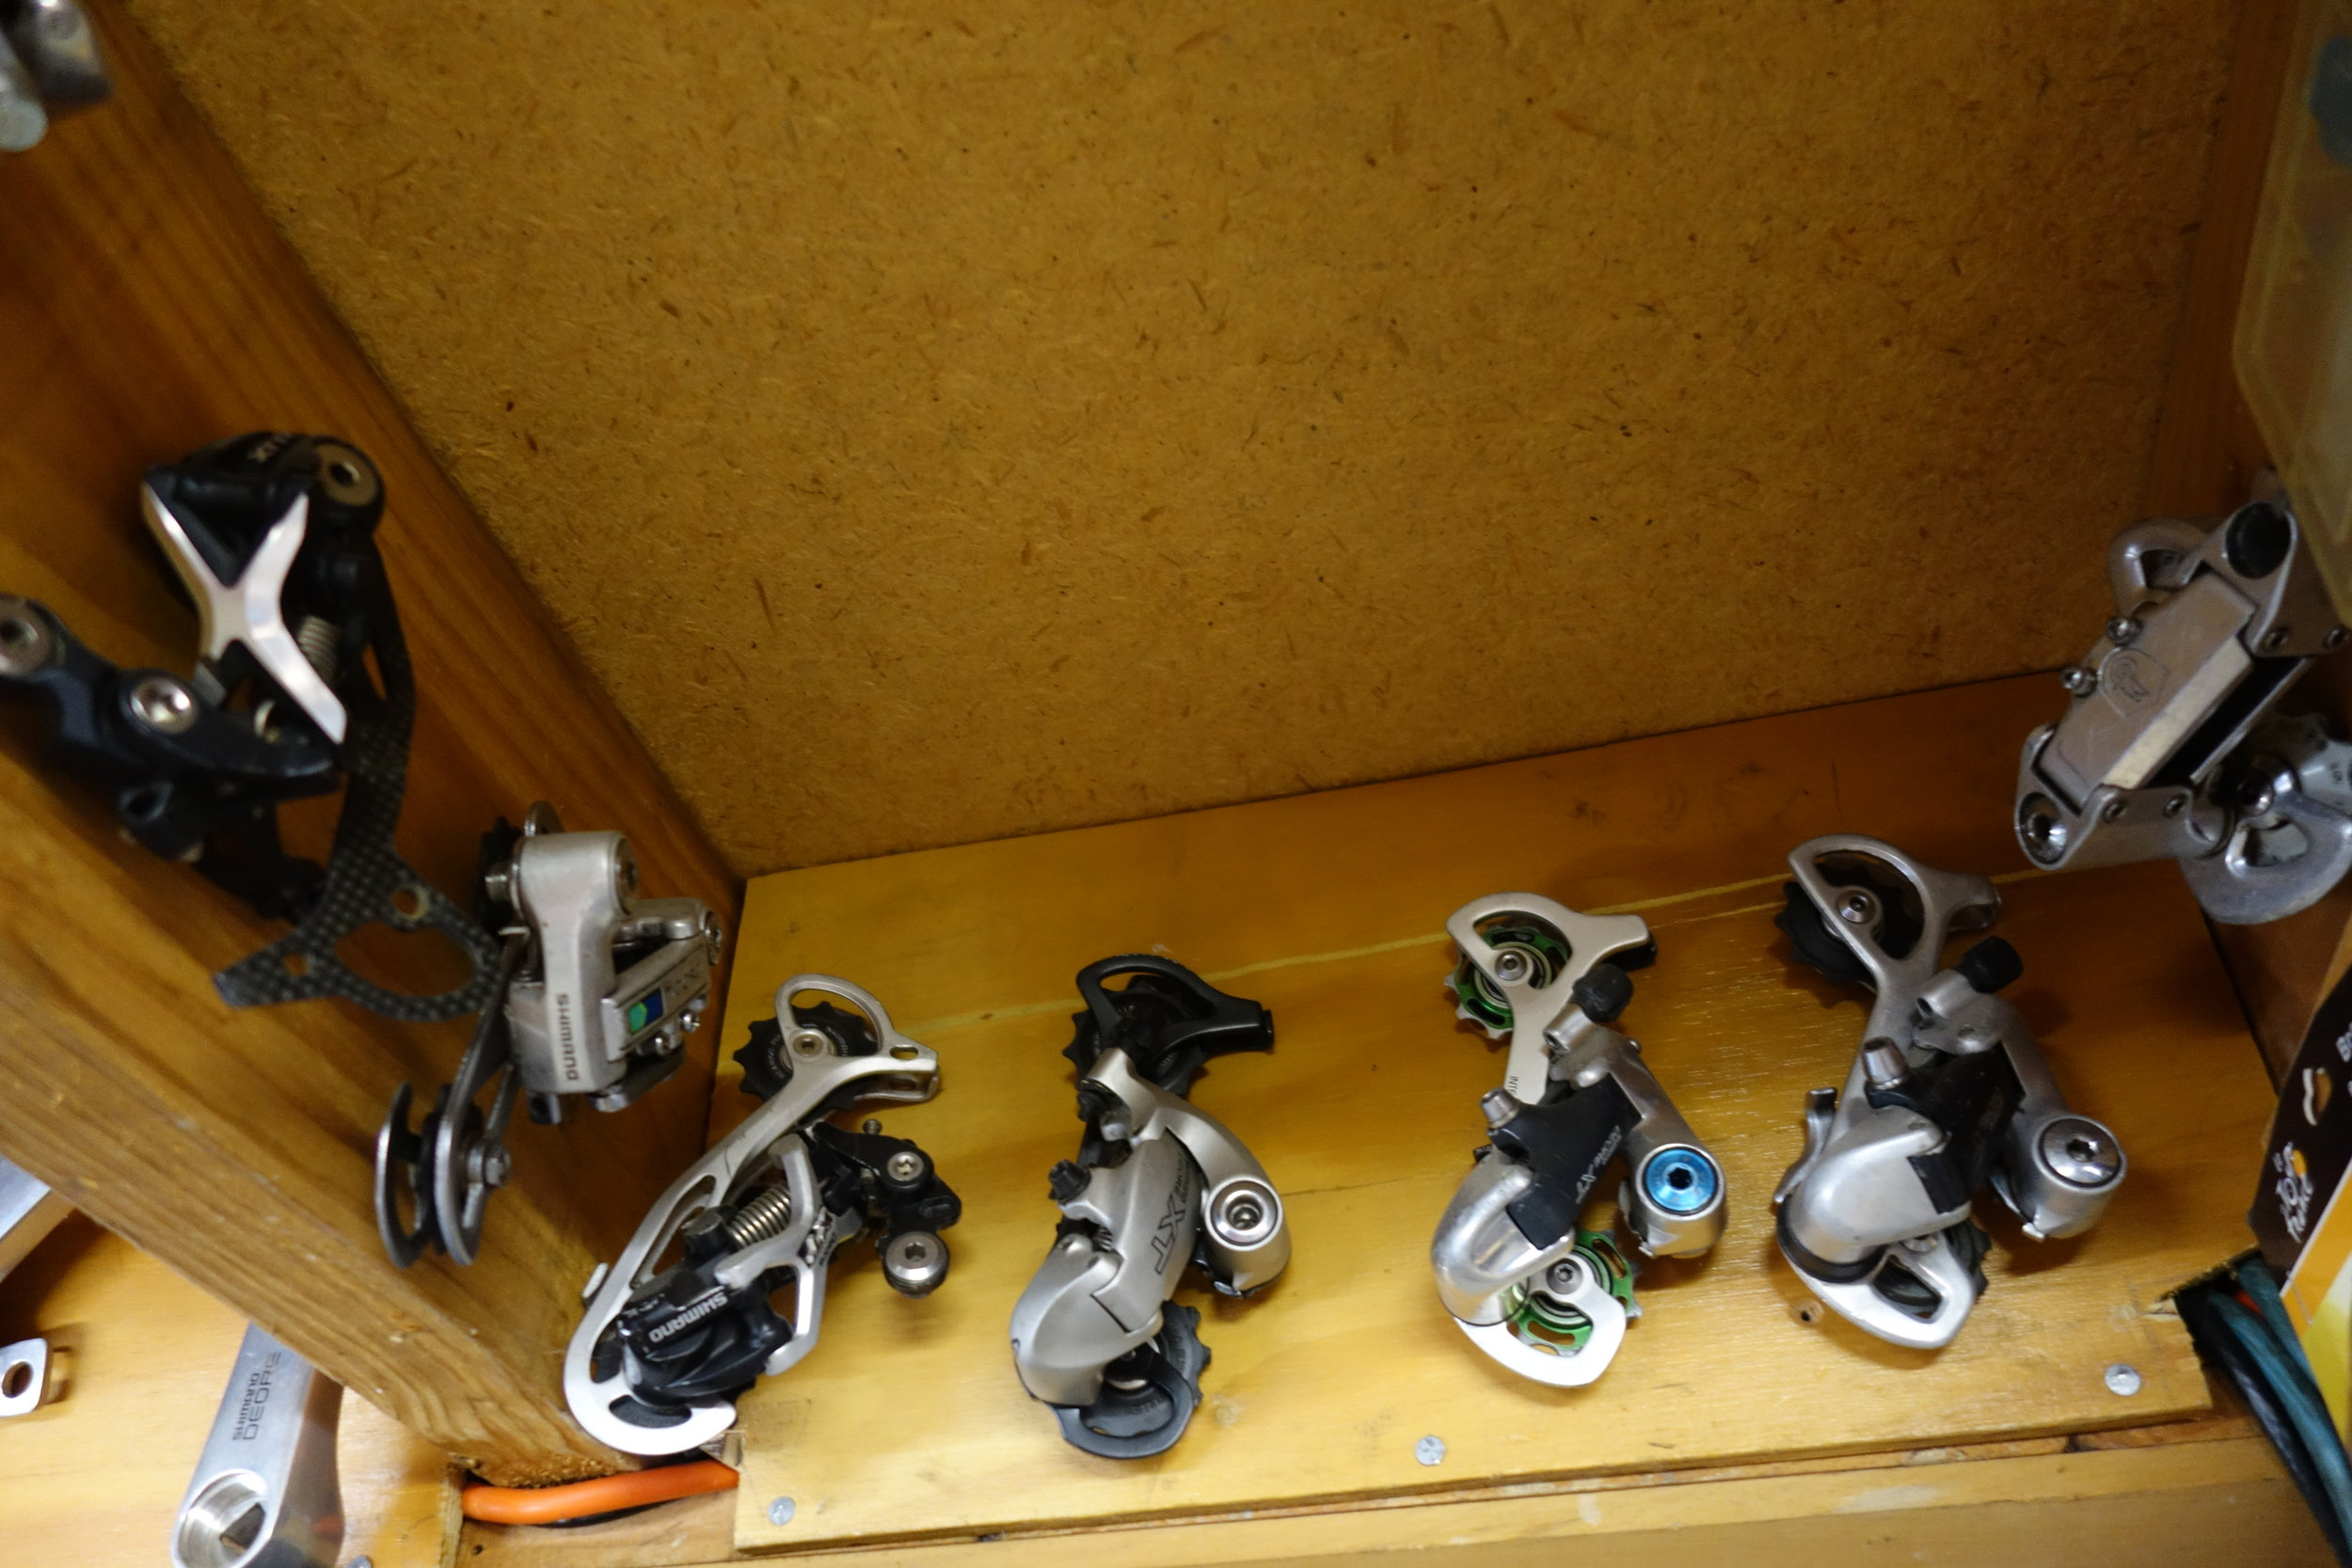 There's nothing quite like a good derailleur collection